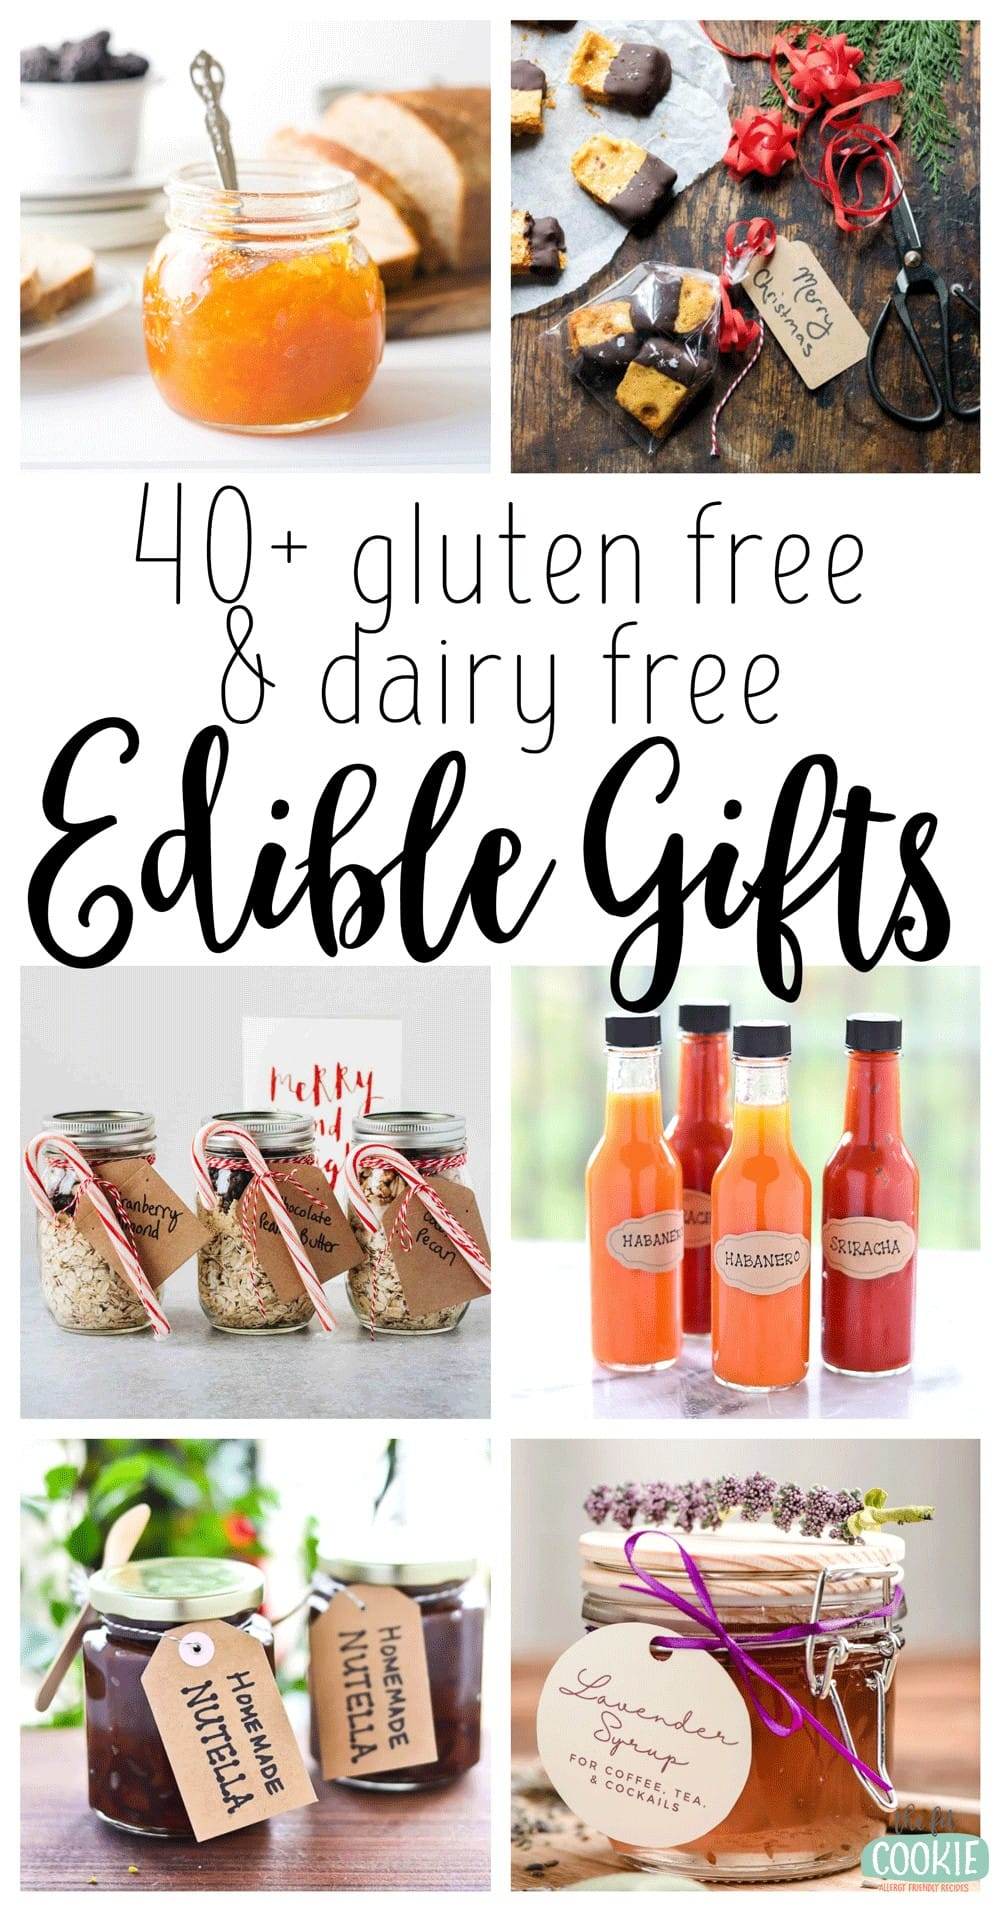 photo collage of allergy friendly edible gifts